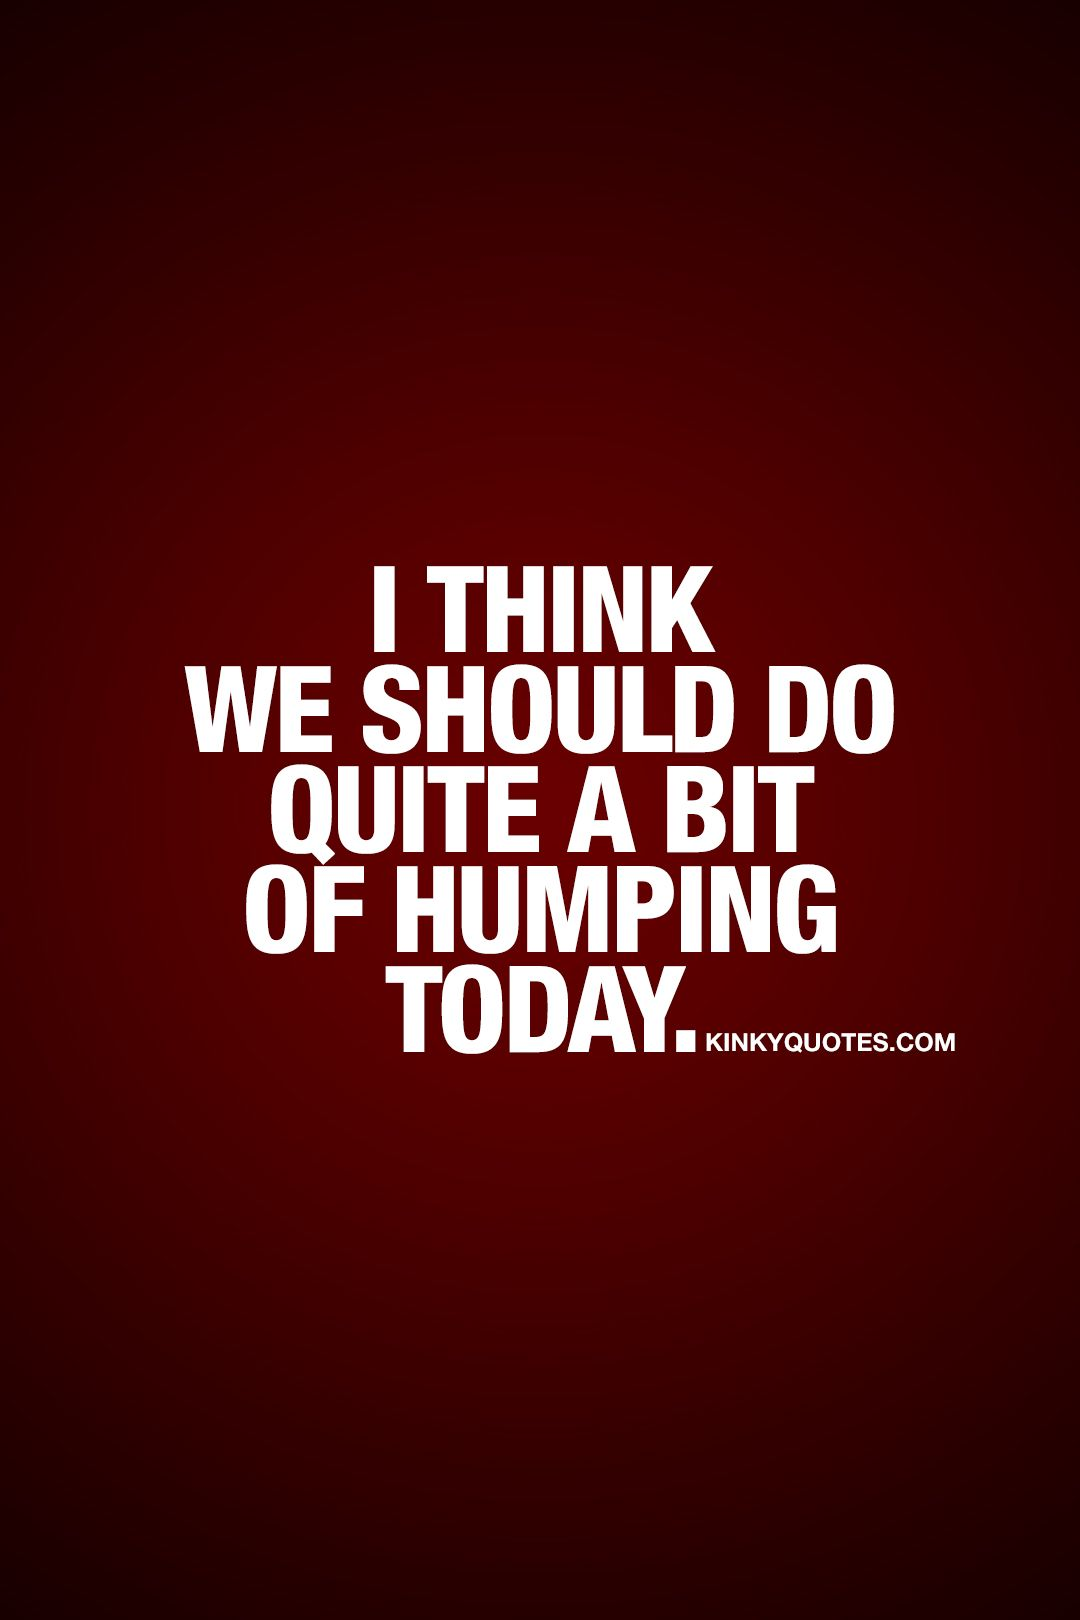 Humping Granny Good i think we should do quite a bit of humping today. ❤ you should